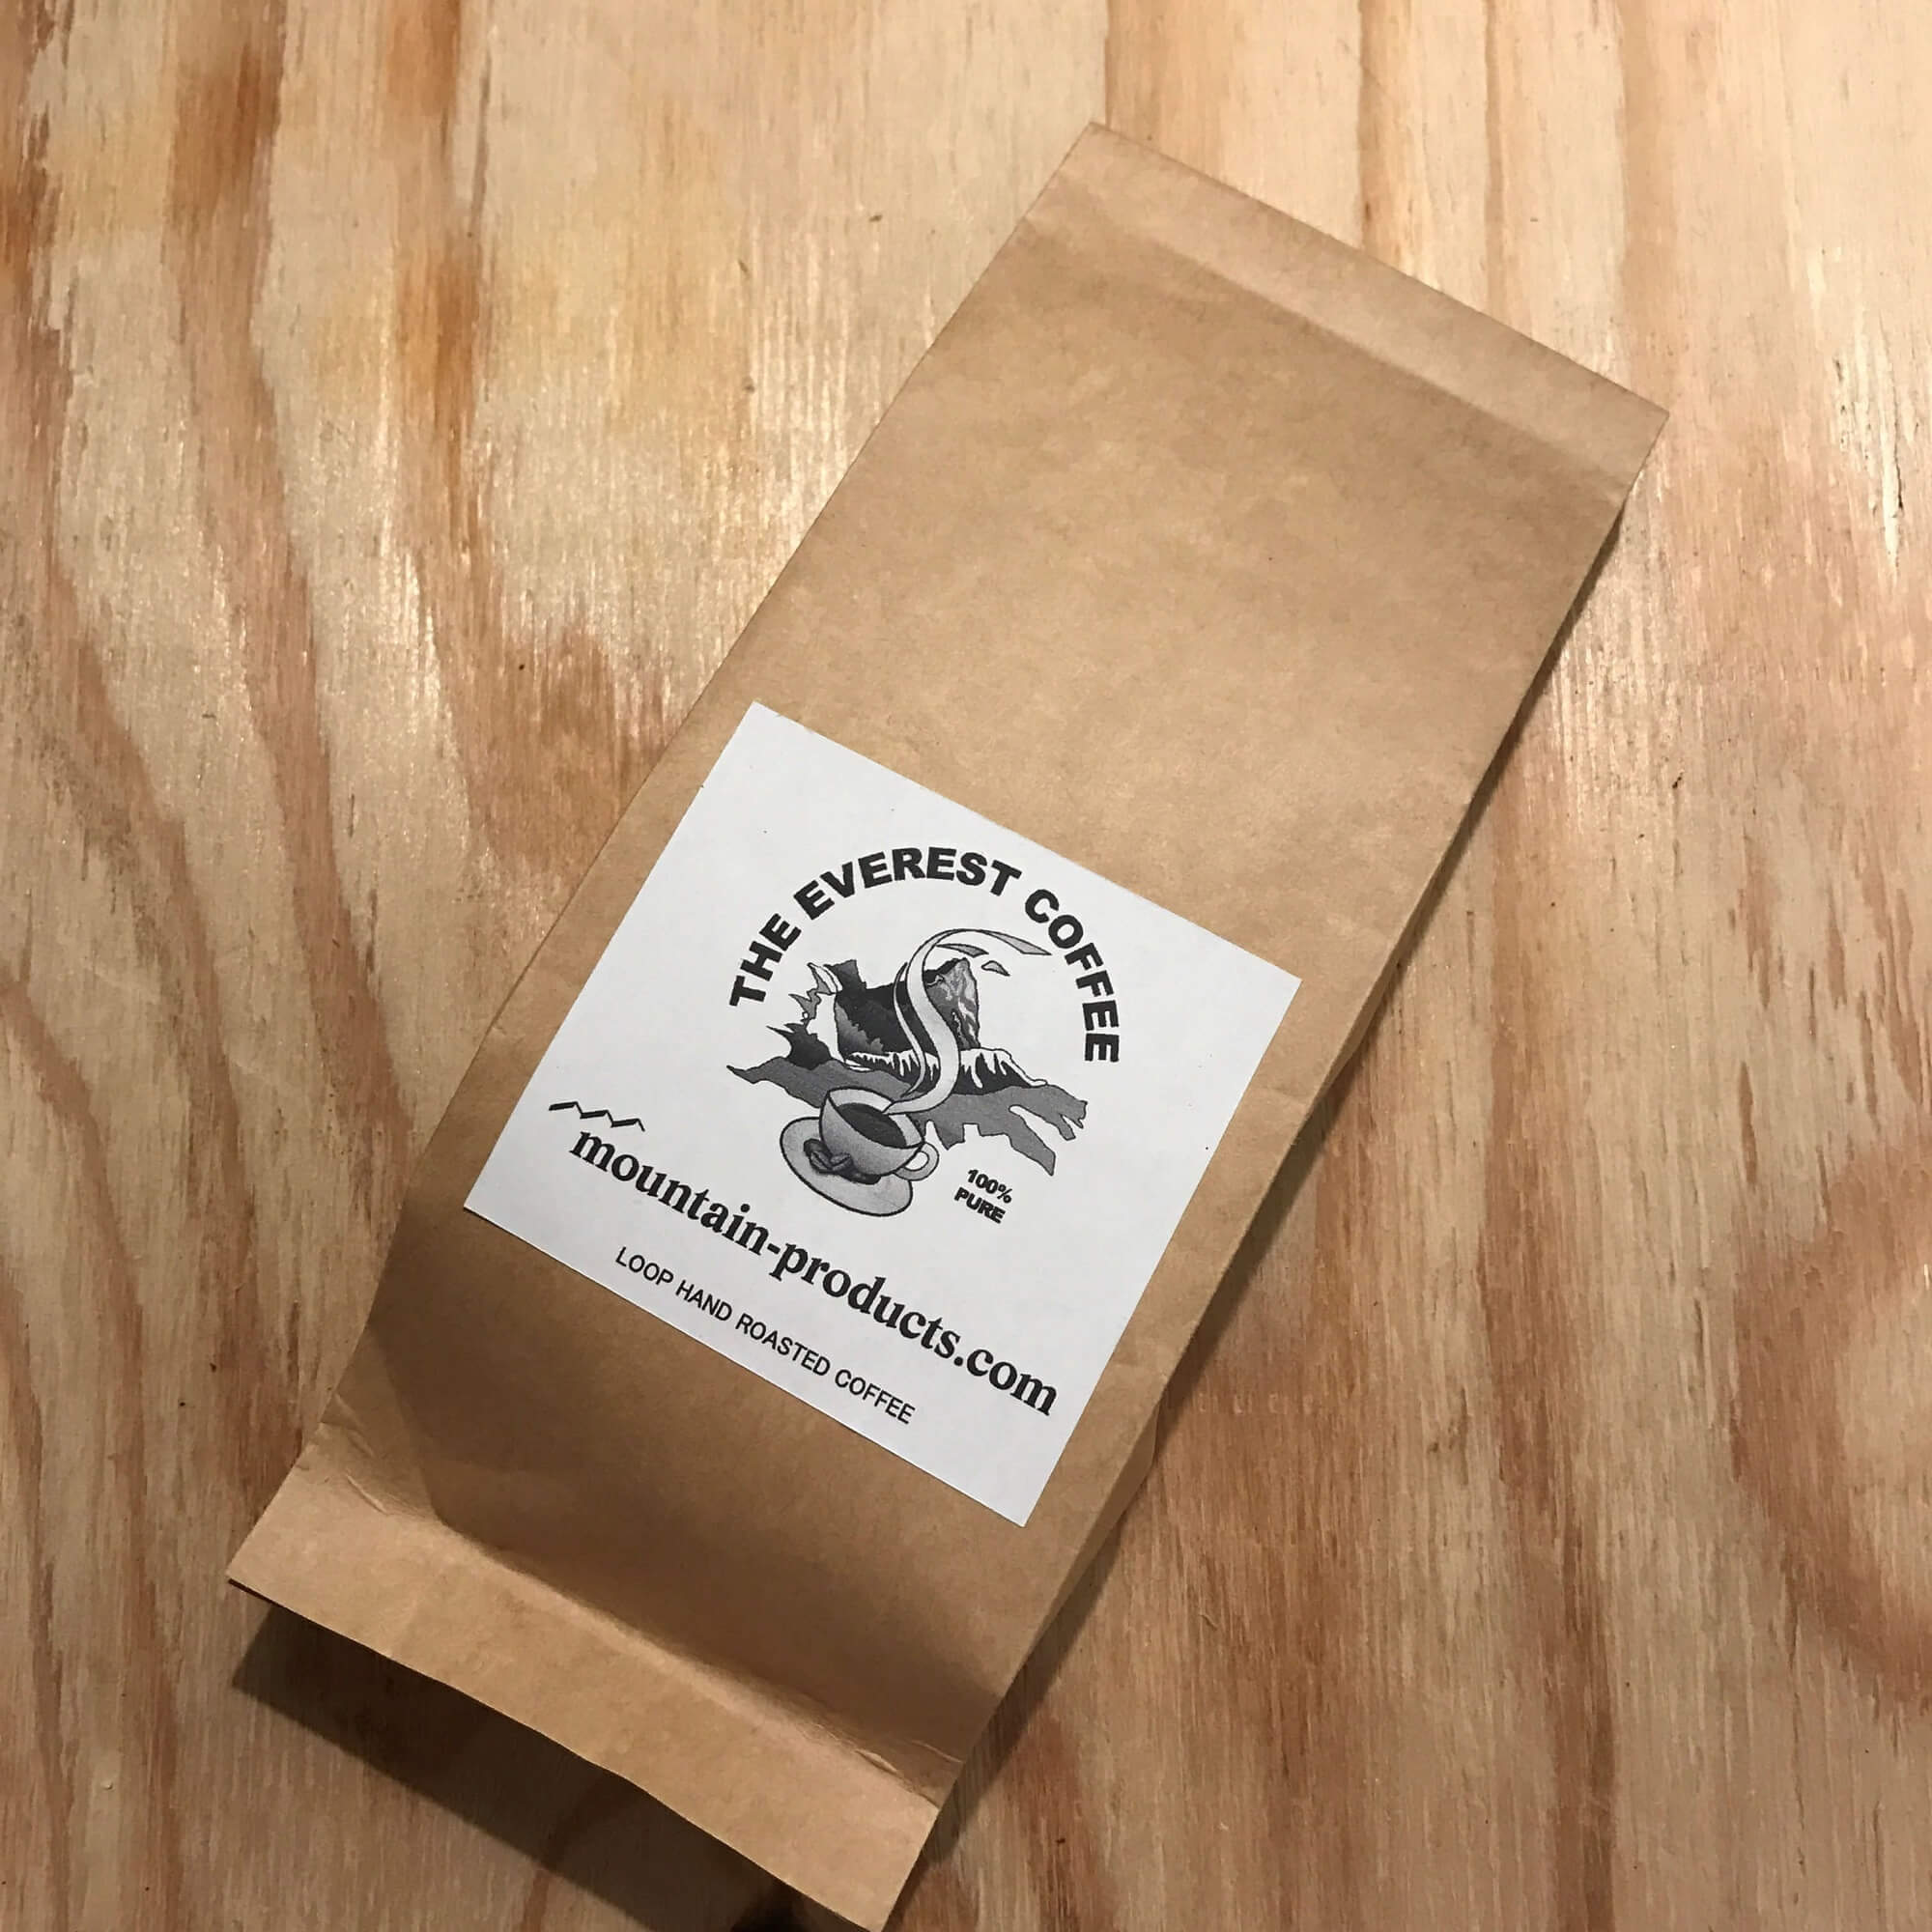 THE EVEREST COFFEE  Roasted beans 200g package 豆